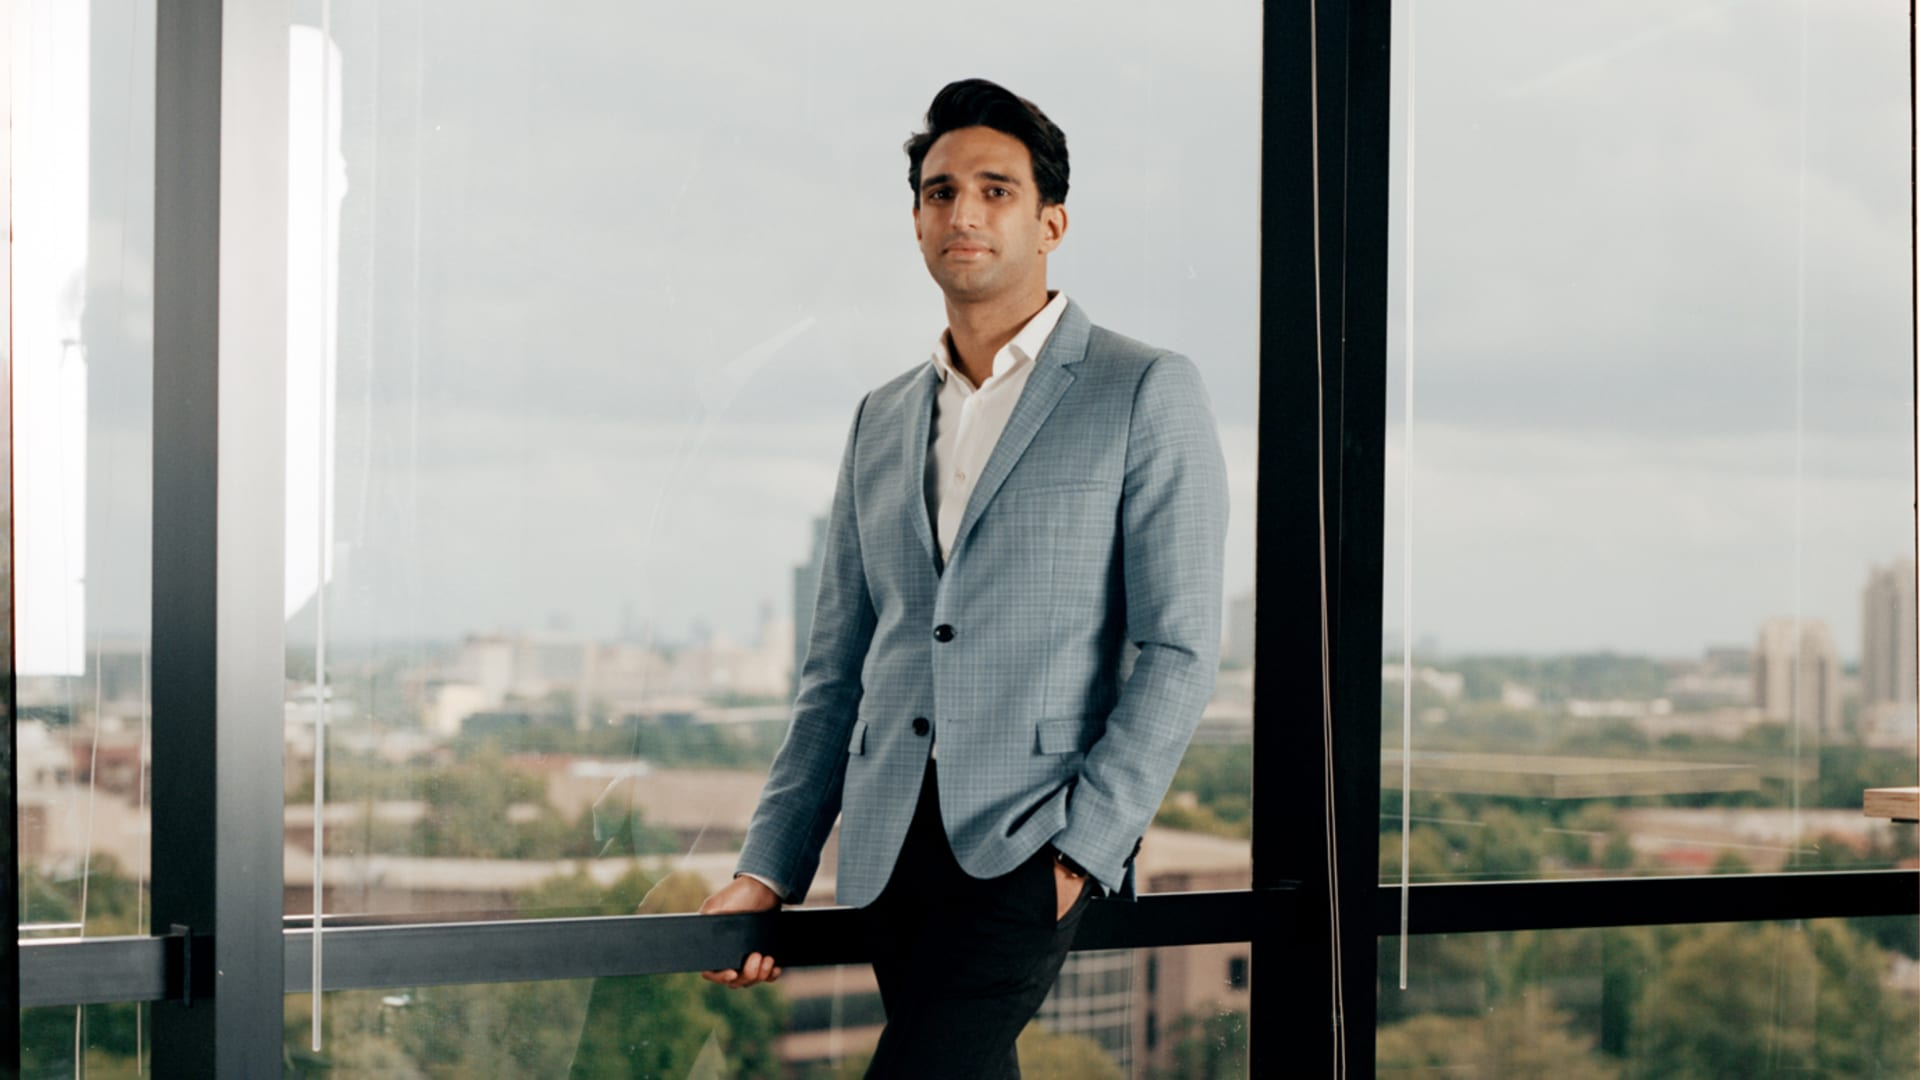 Kabir Barday, founder and CEO of OneTrust.